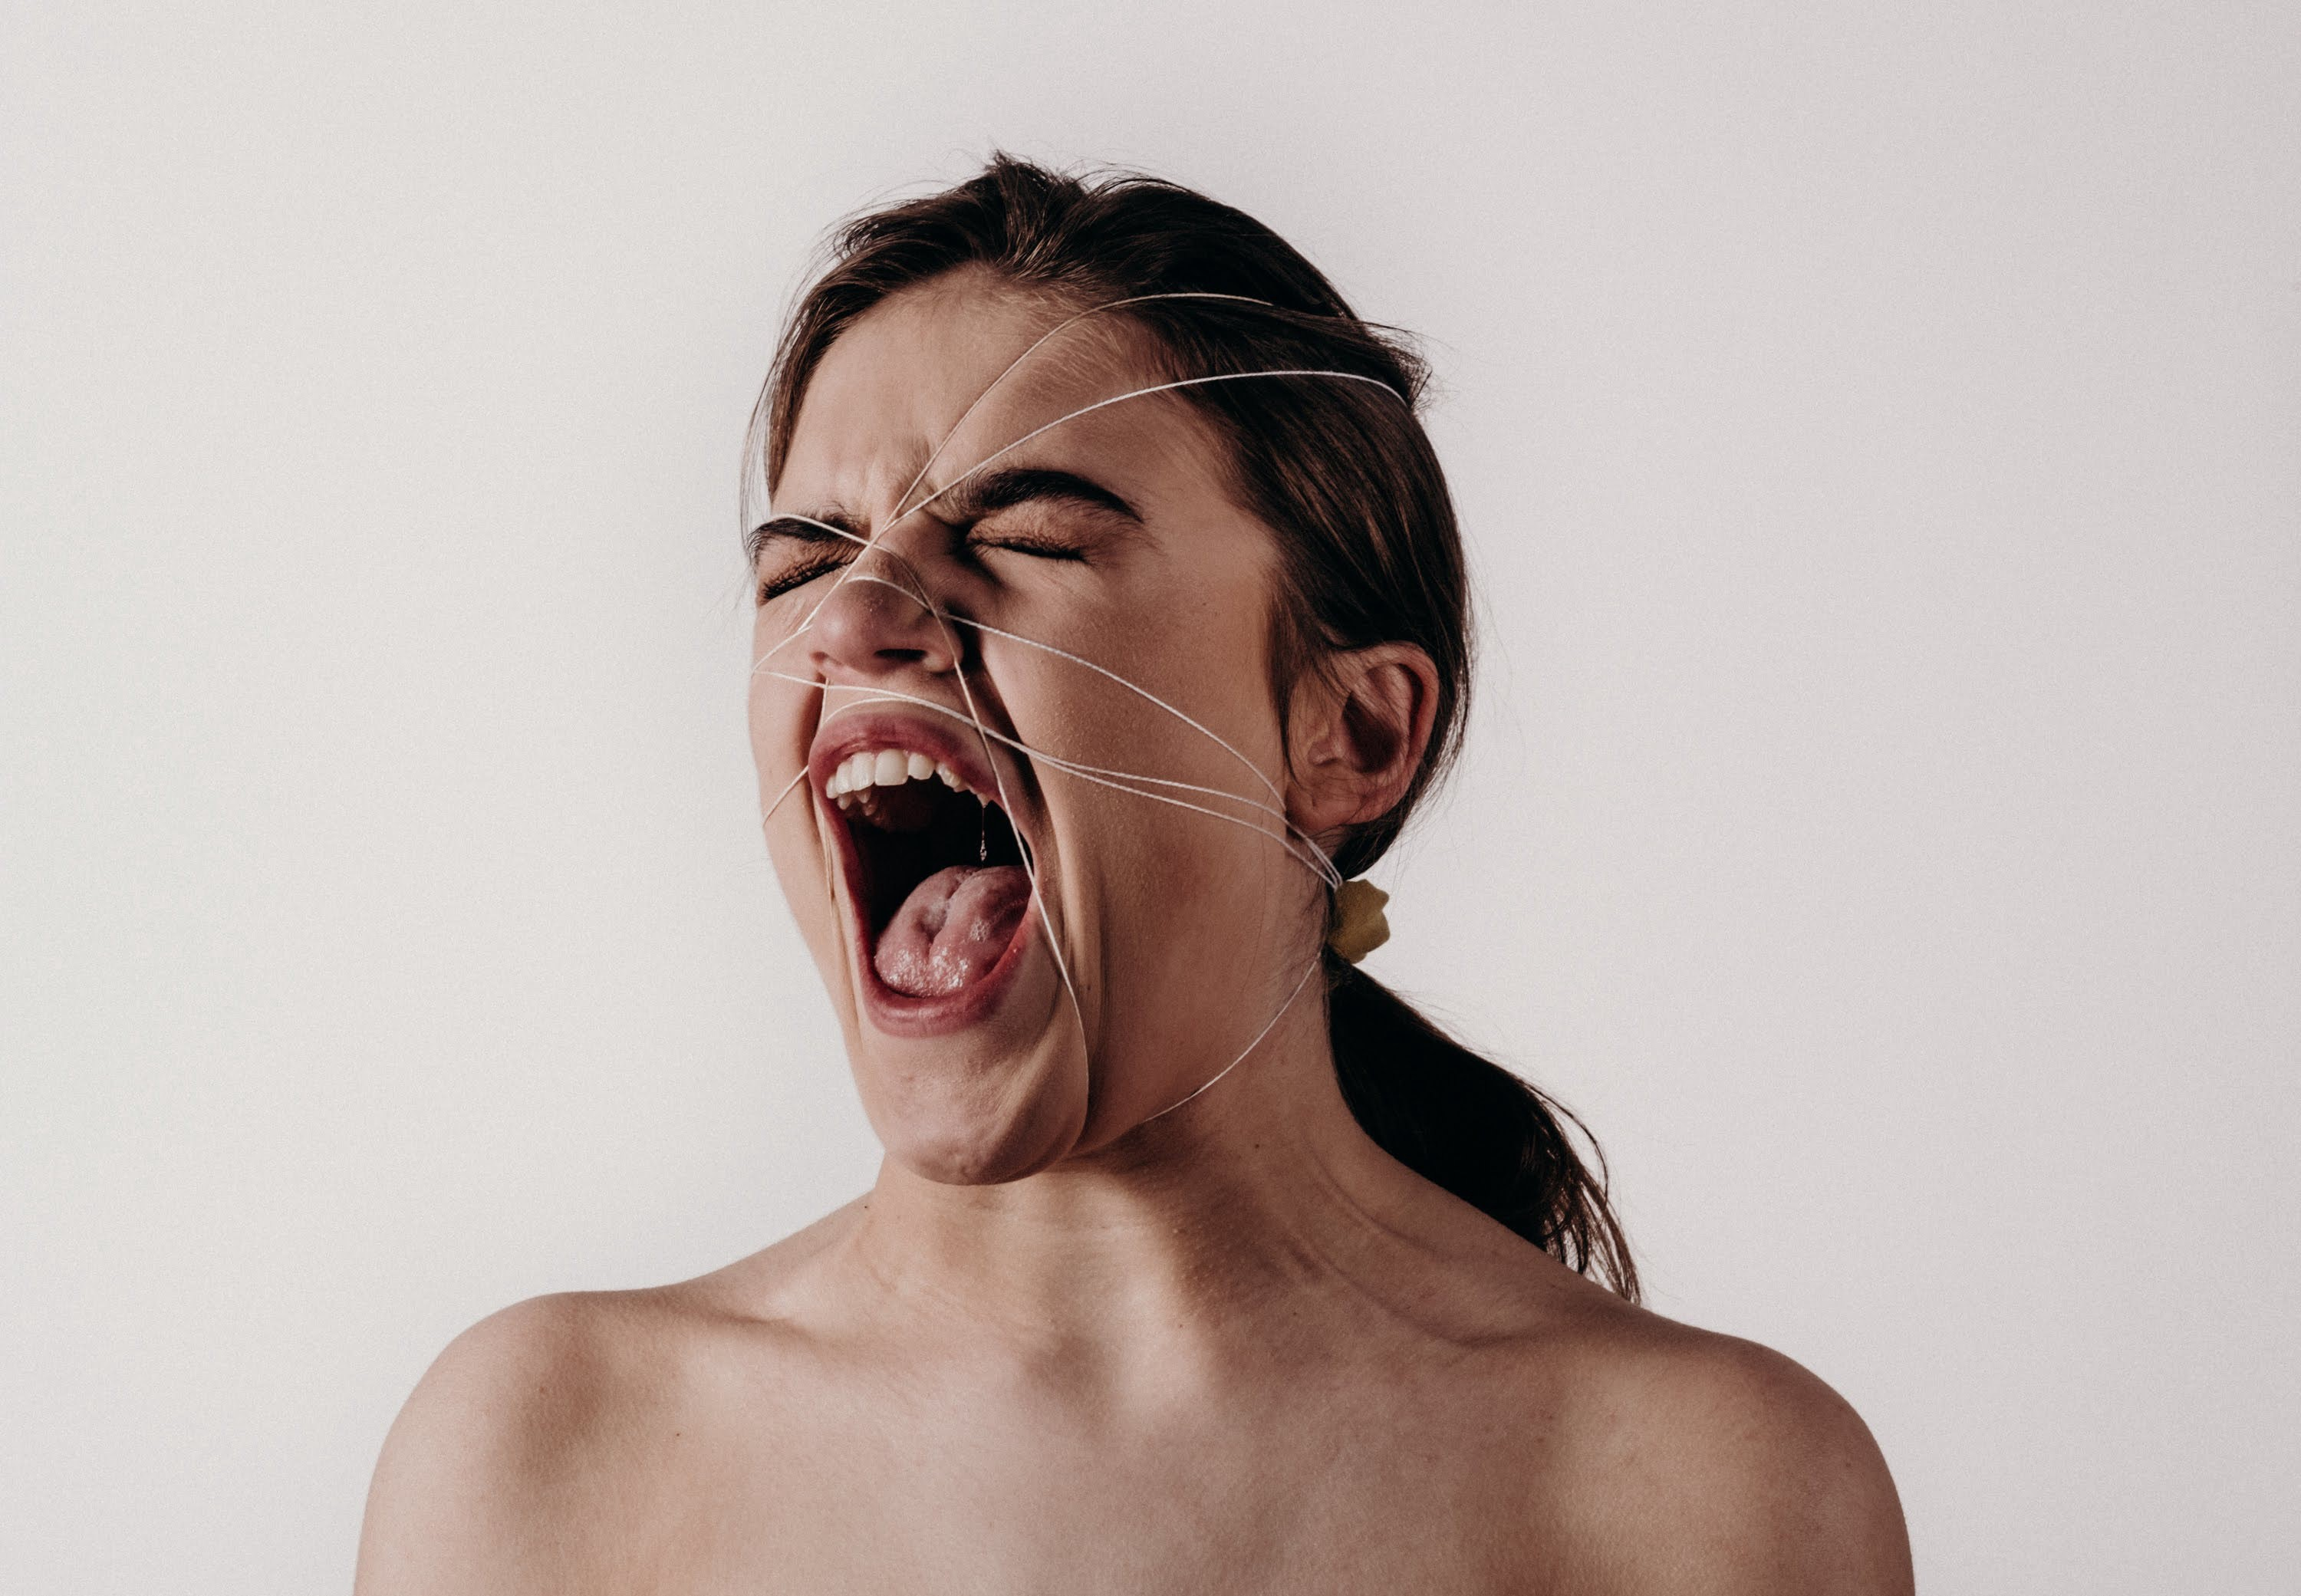 Woman screaming against gray background